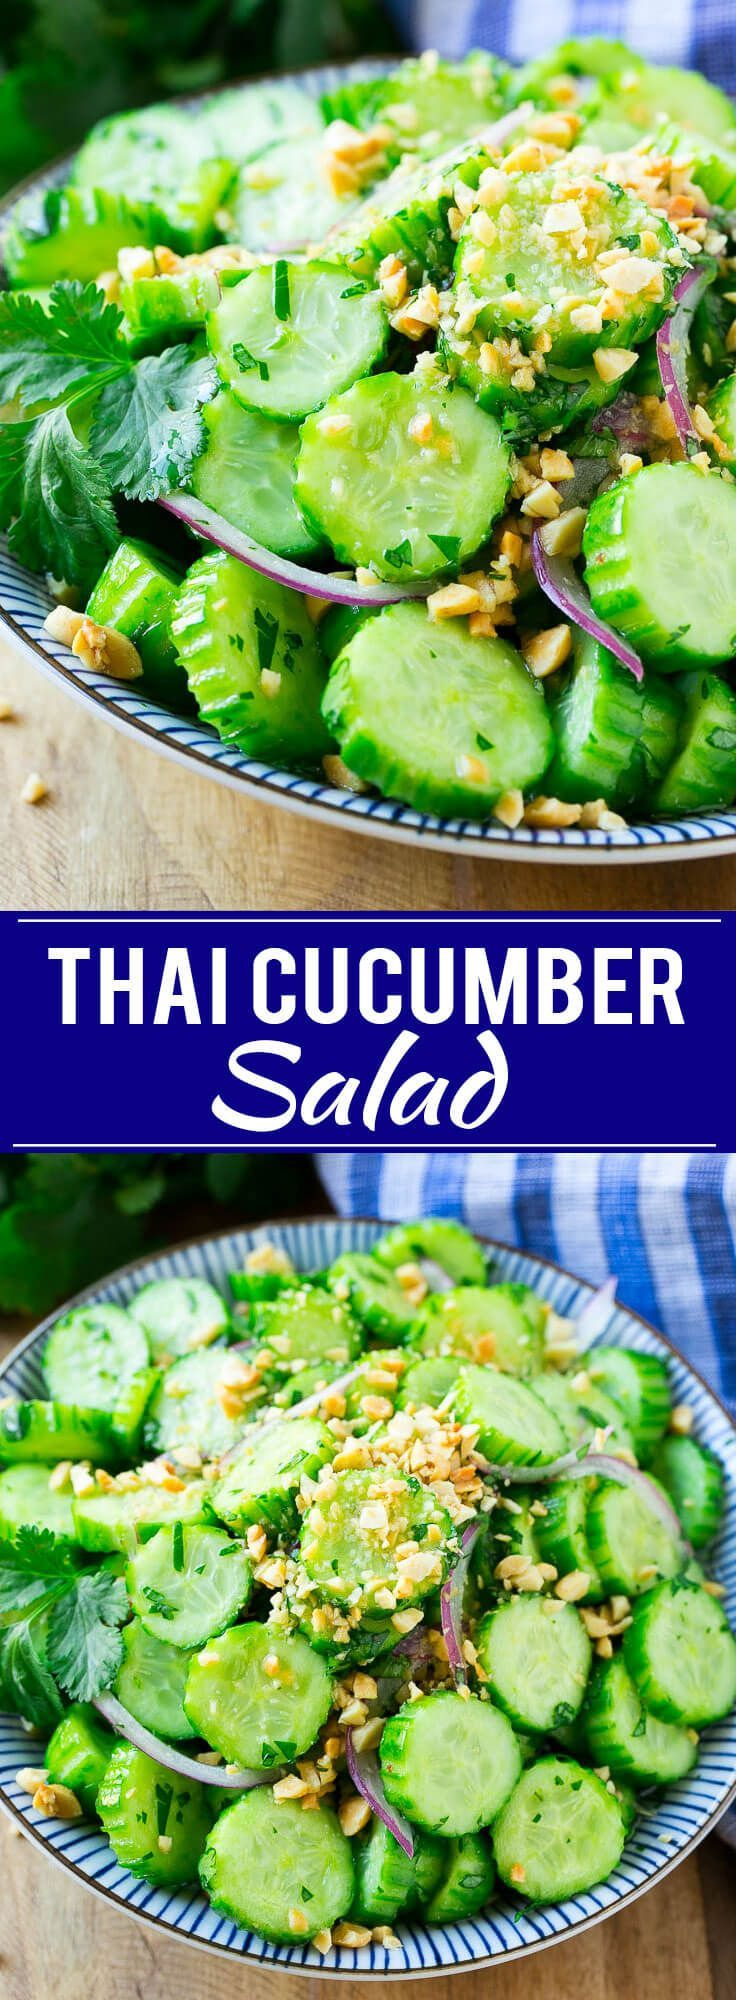 99 best thai recipes images on pinterest cooking recipes dinner thai cucumber salad easy cucumber salad thai food healthy salad minus sugar use some stevia forumfinder Choice Image